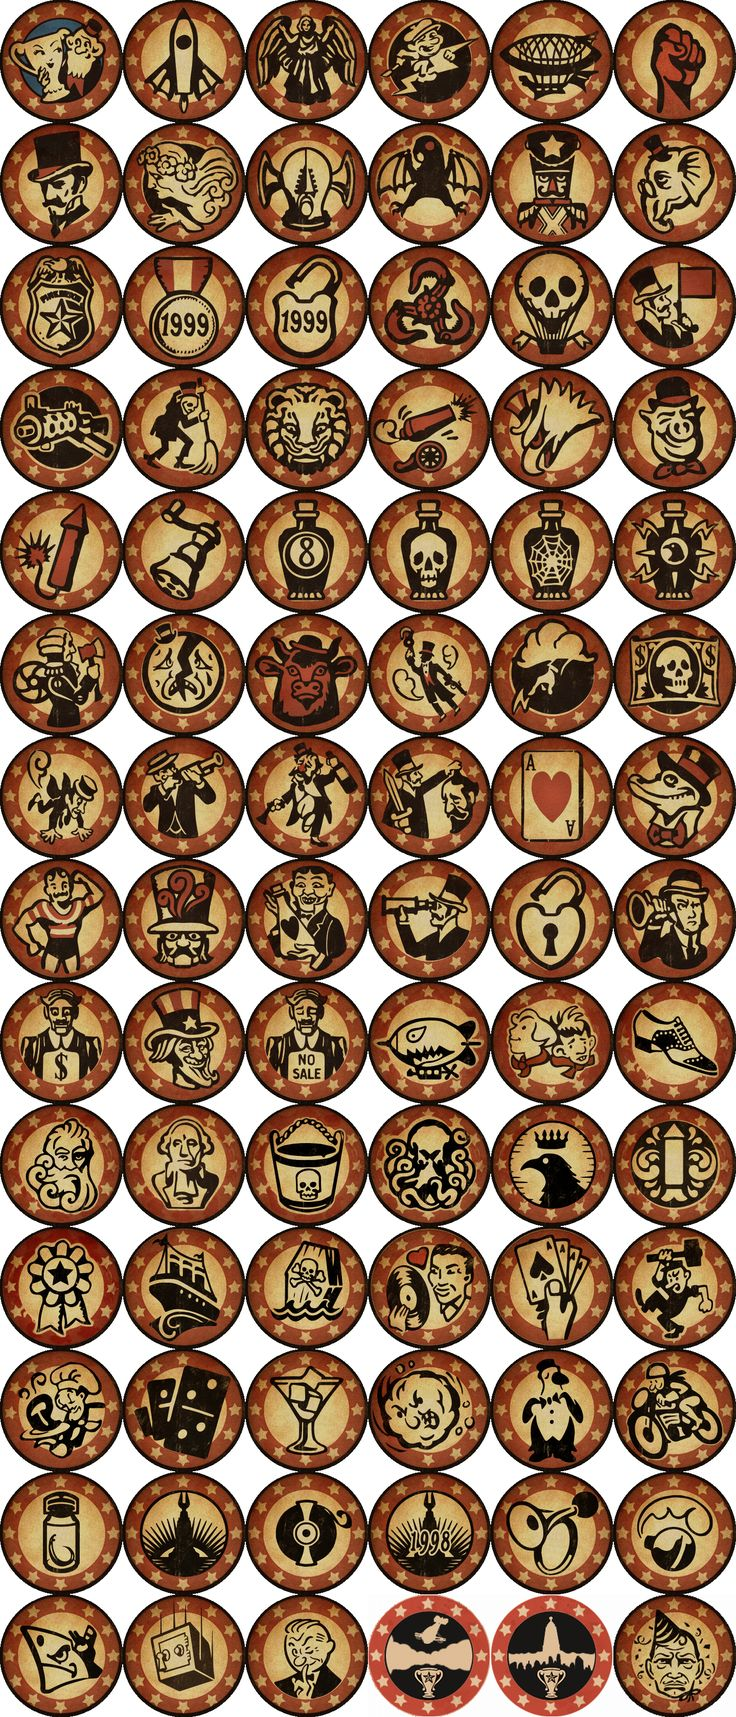 BIOSHOCK INFINITE 81 Trophies + 3 DLC Icons  Badges idea